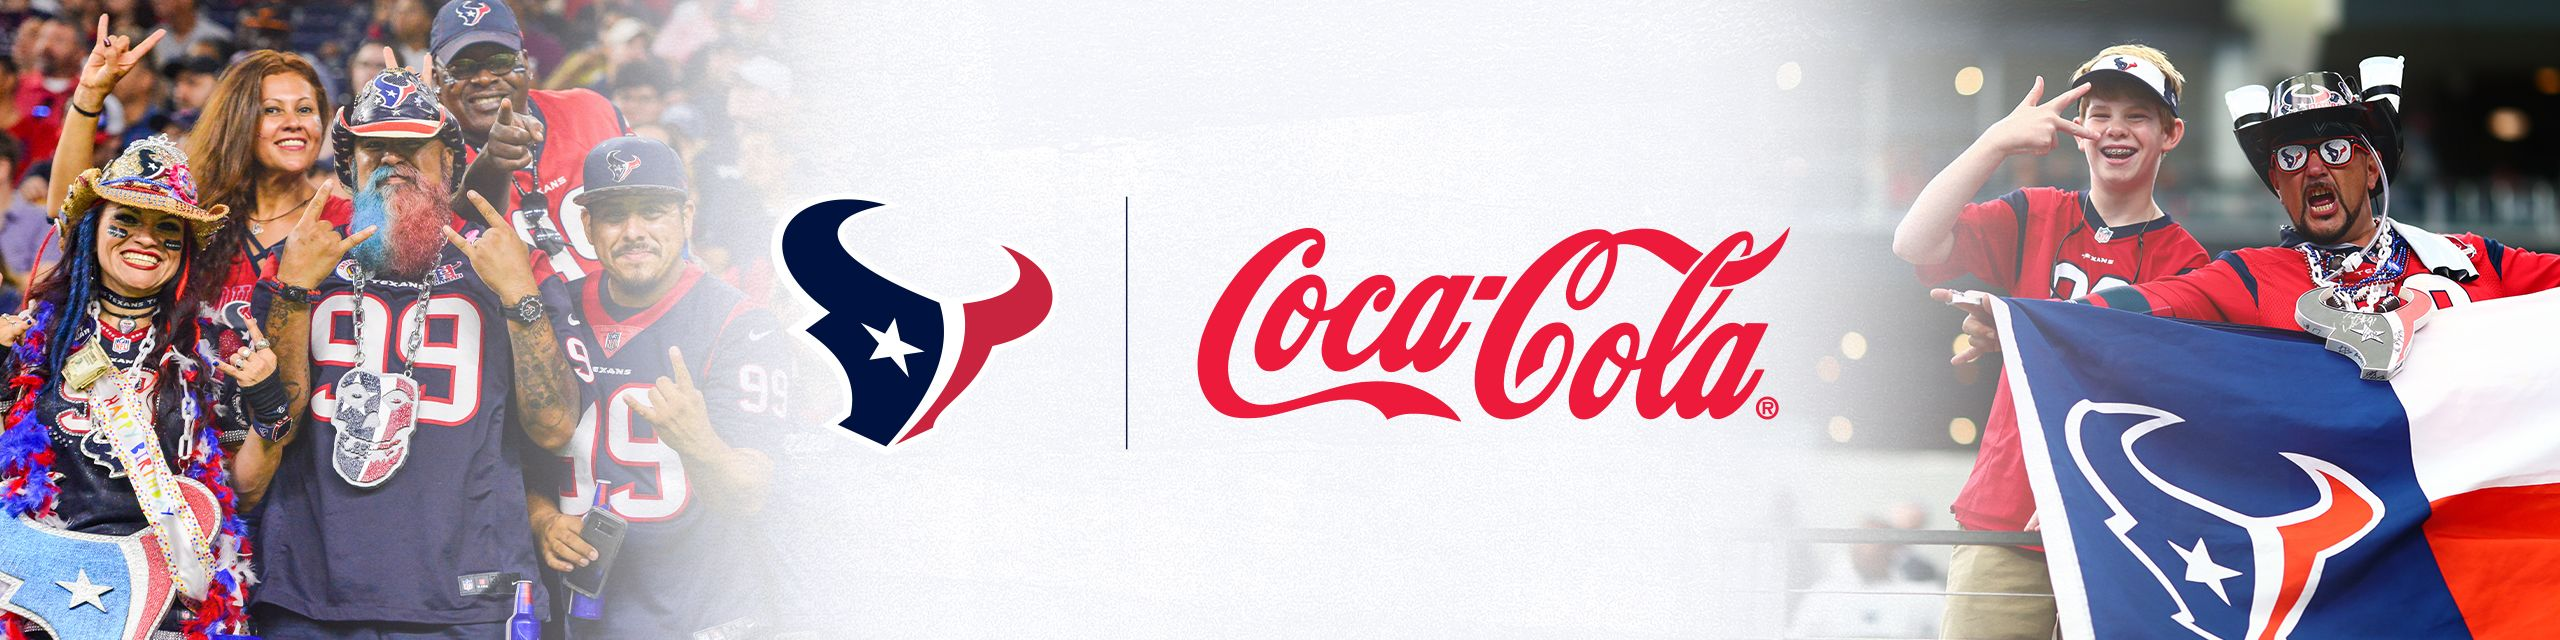 Gameday with the Texans and Coca-Cola